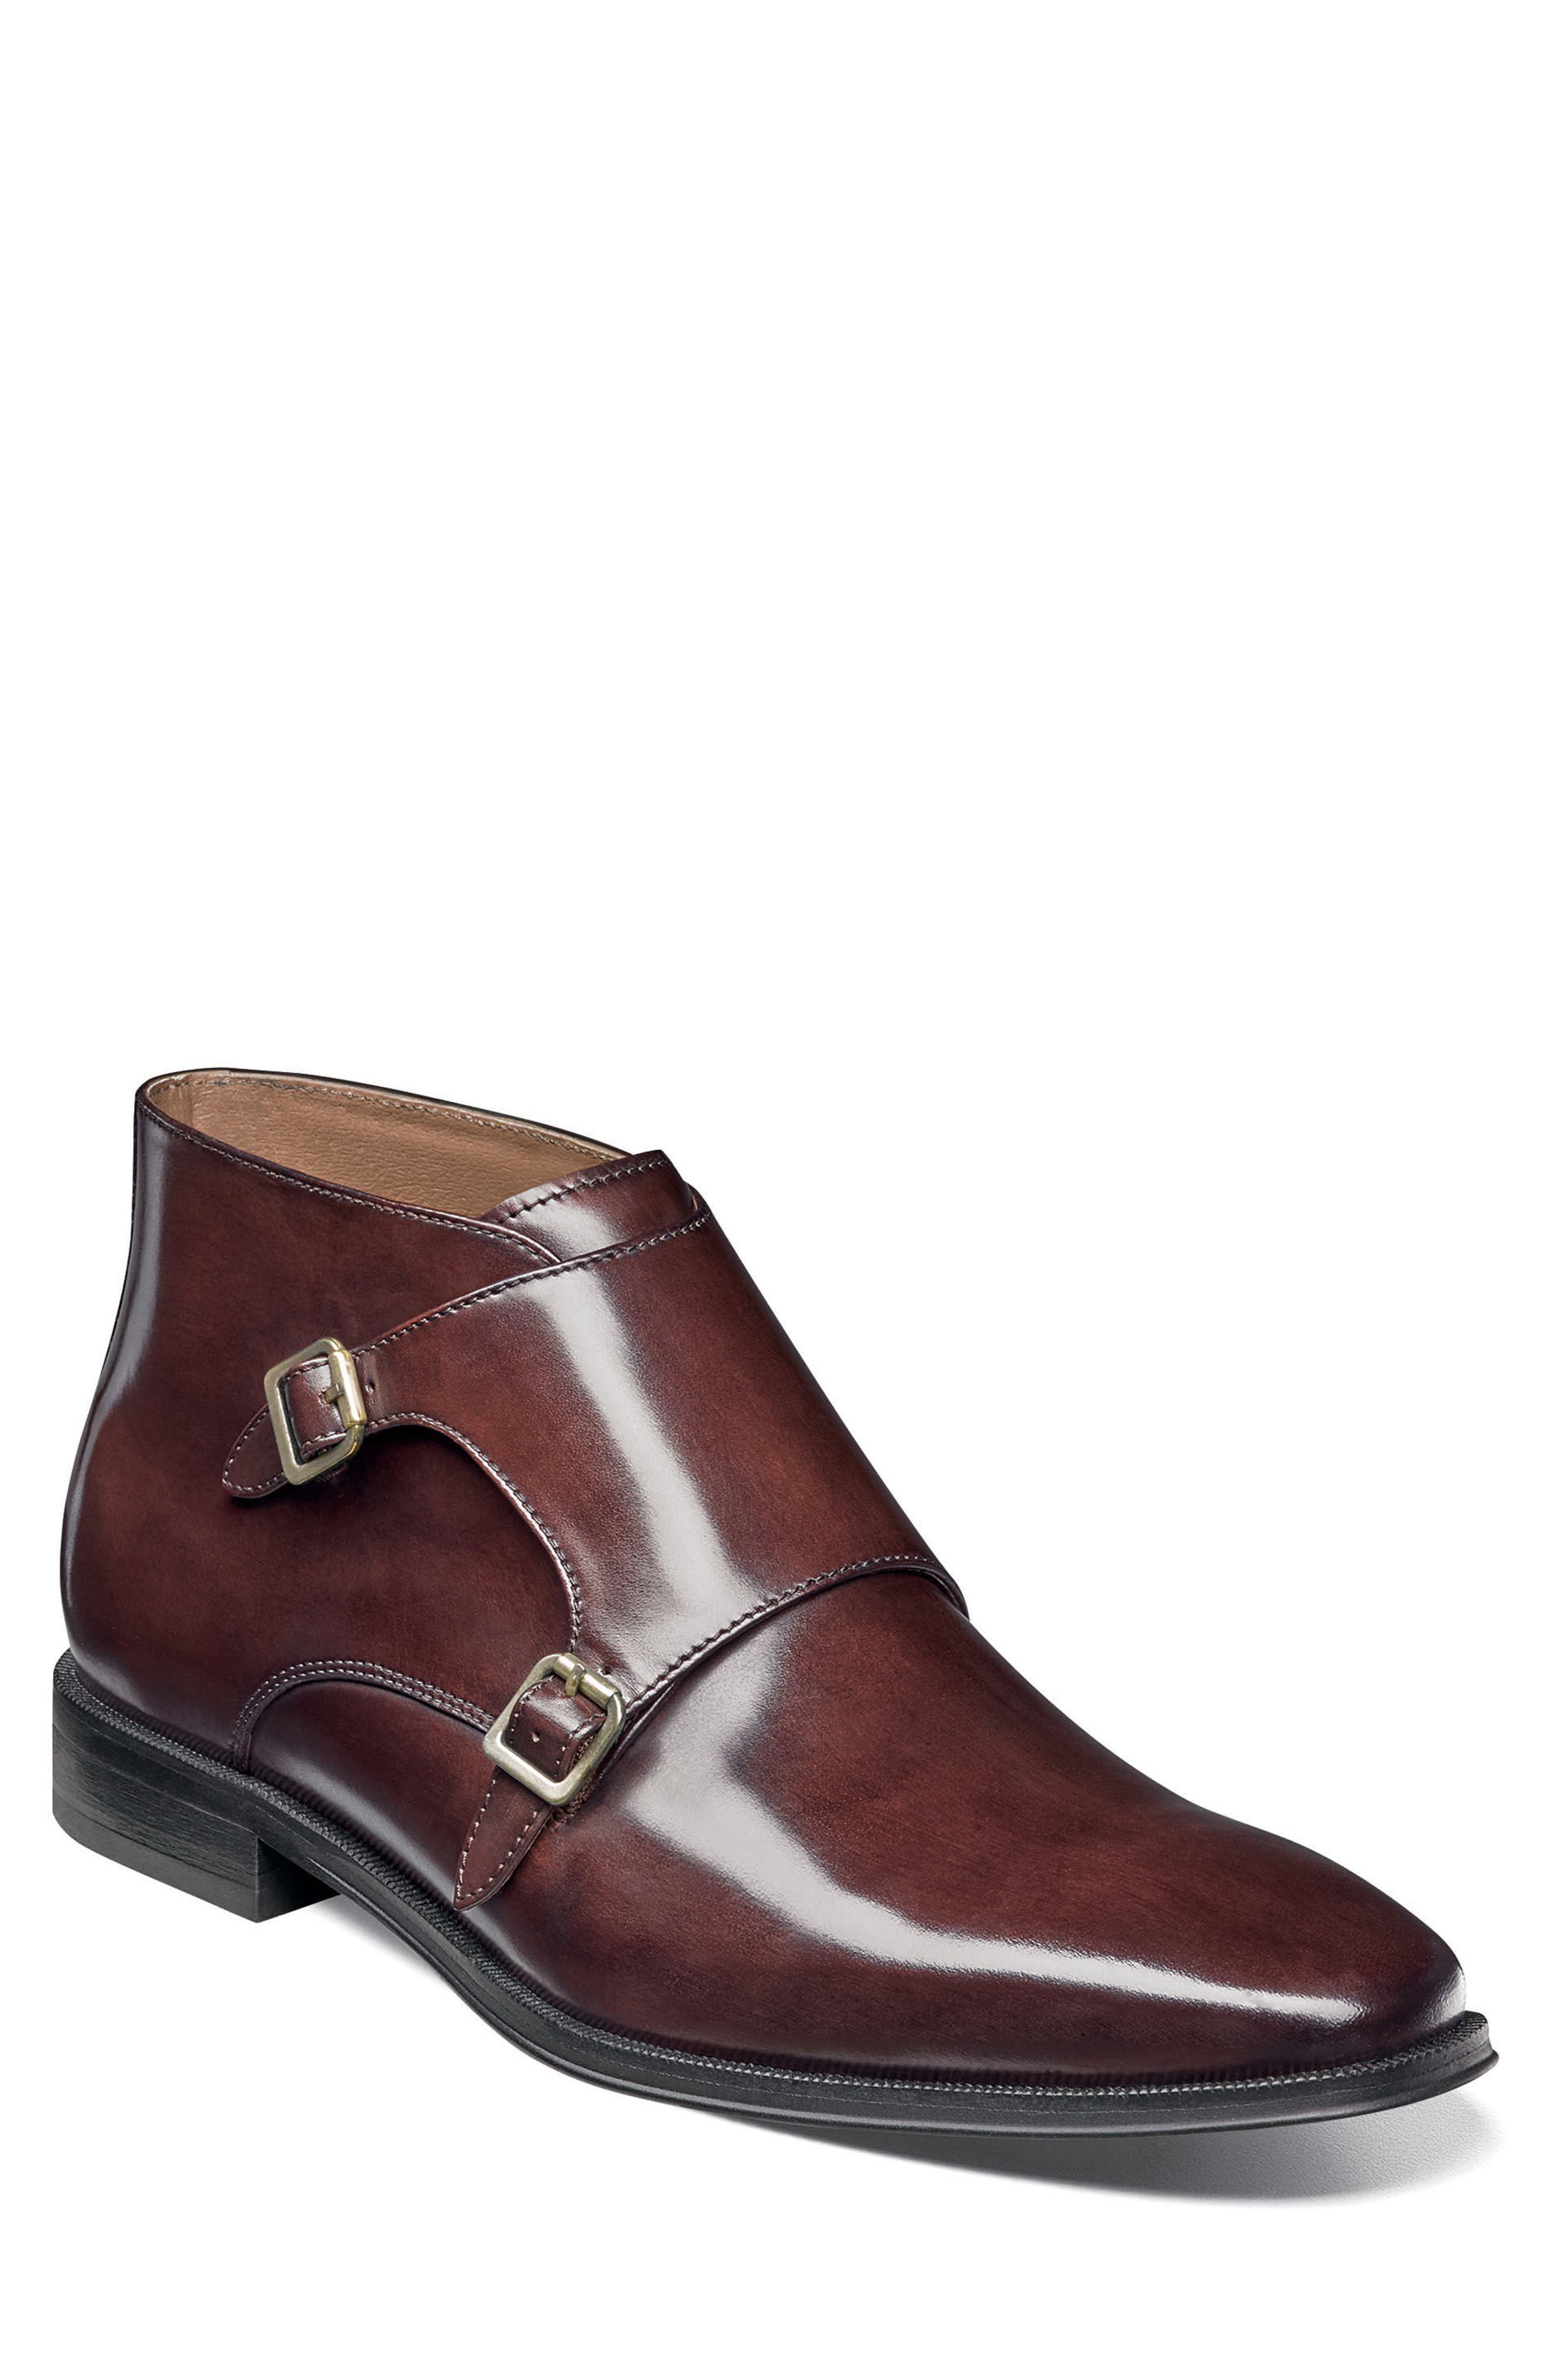 Belfast Double Monk Strap Boot,                             Main thumbnail 2, color,